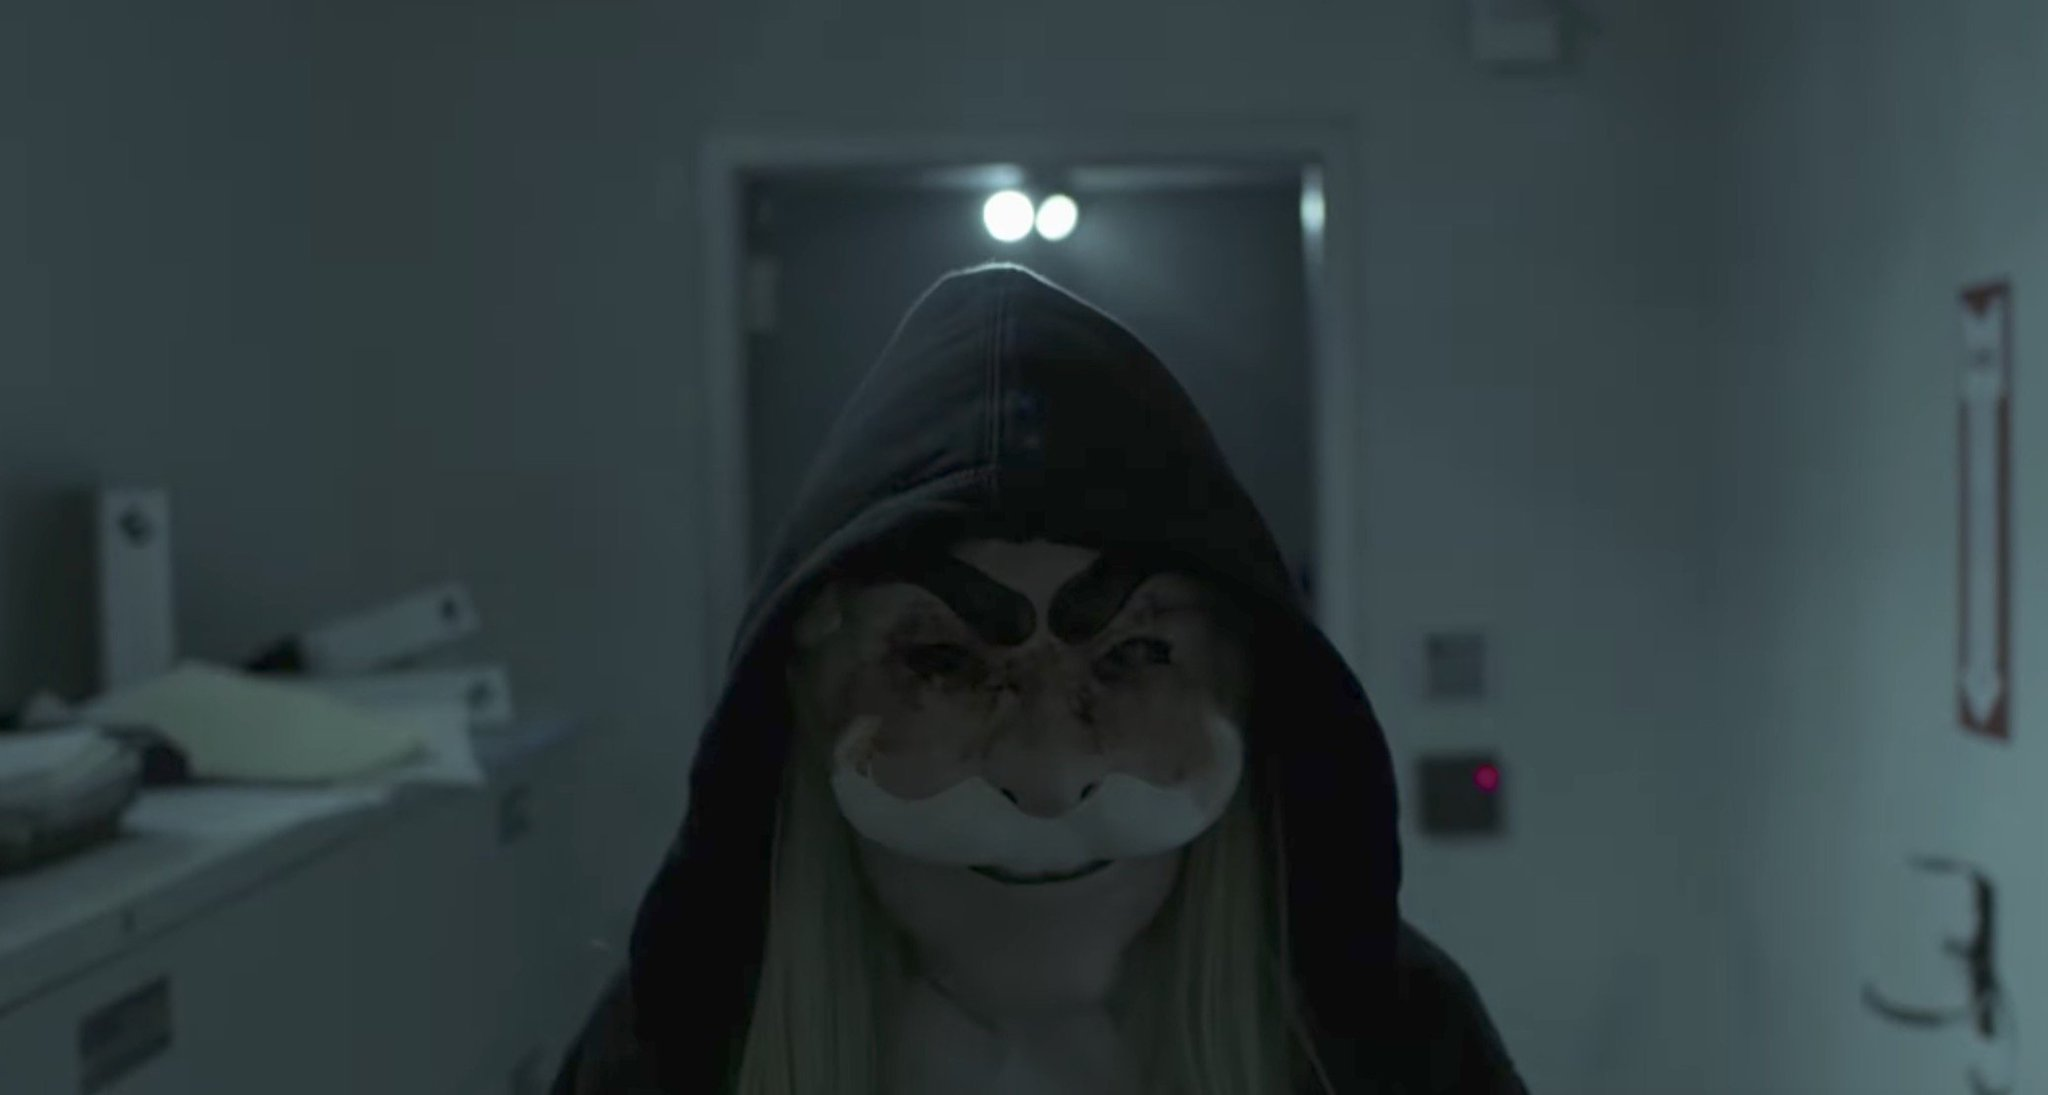 Mr. Robot season 3 starts in October, here's the creepy first trailer https://t.co/E5mB1PEBL1 https://t.co/icYaXUmttm